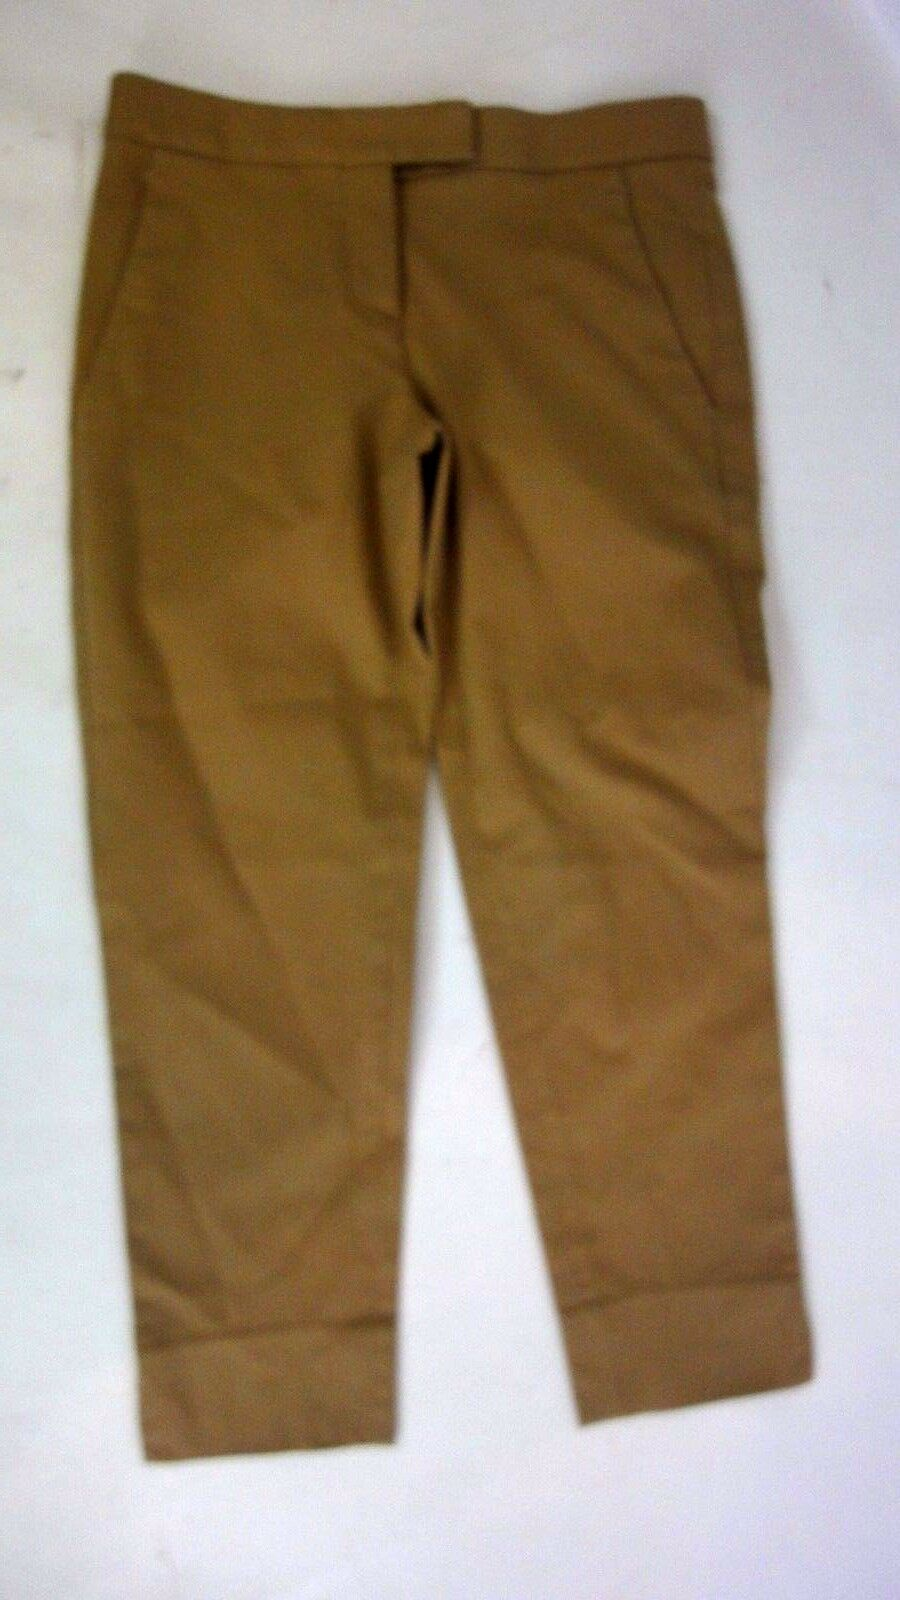 THEORY Tan Capri Pants Sz 00